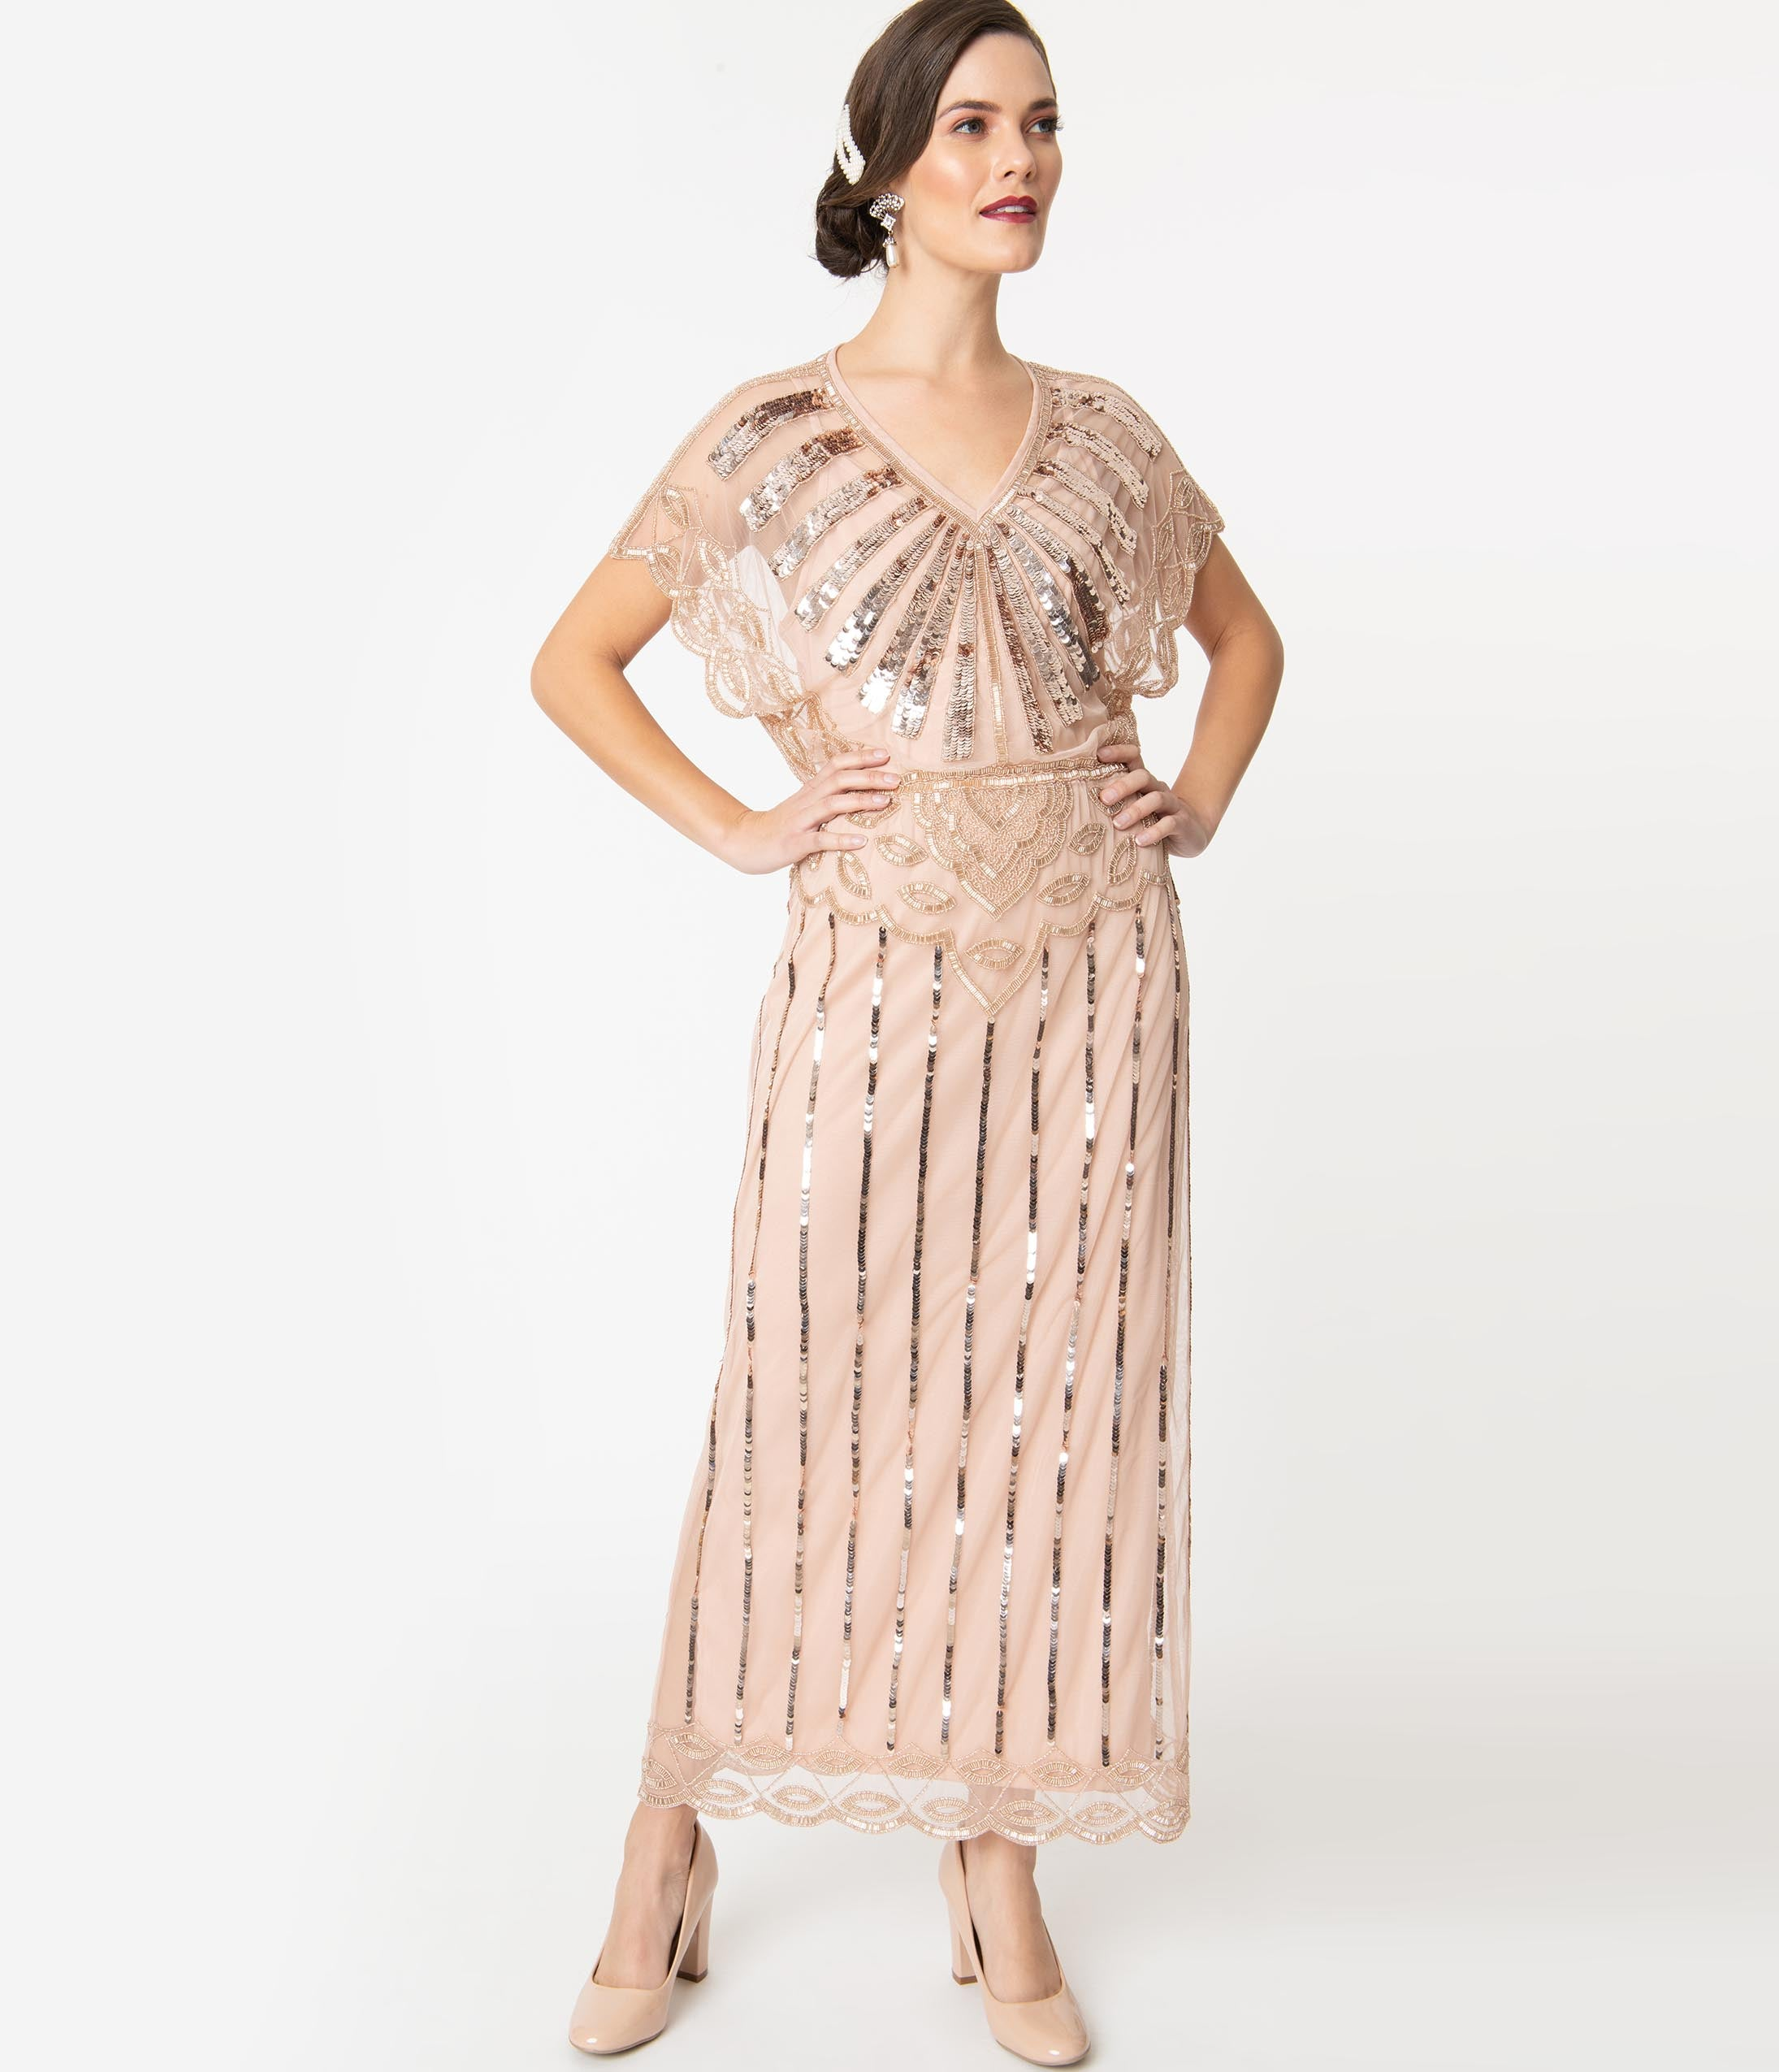 1920s Fashion & Clothing | Roaring 20s Attire 1920S Blush Pink Deco Angelina Maxi Flapper Dress $168.00 AT vintagedancer.com